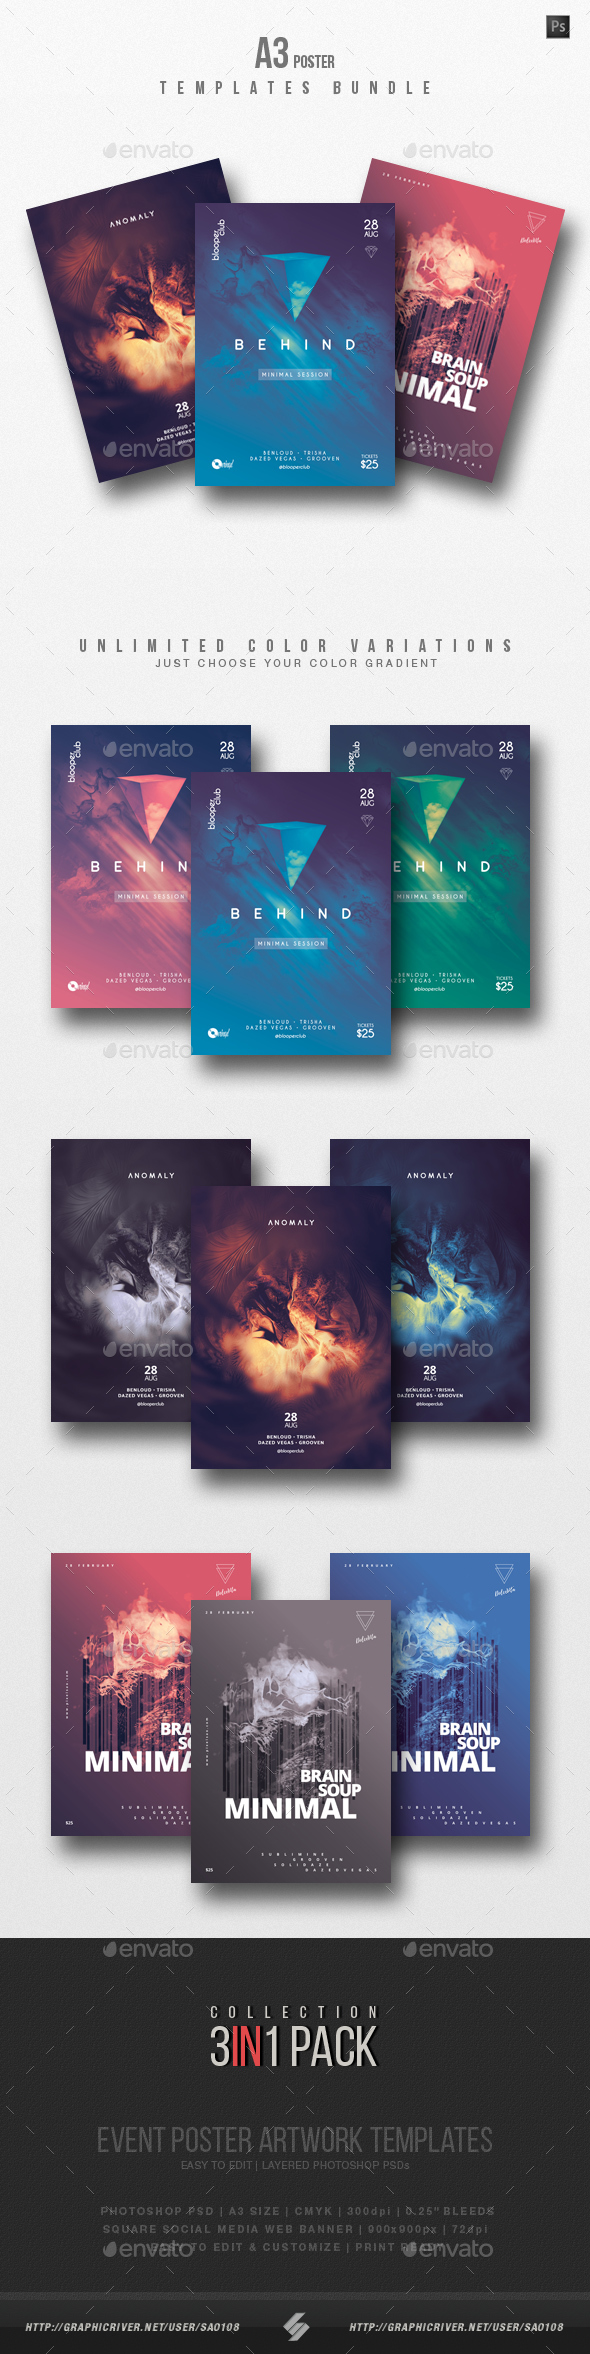 Minimal Sound vol.7 - Party Flyer / Poster Templates Bundle - Clubs & Parties Events